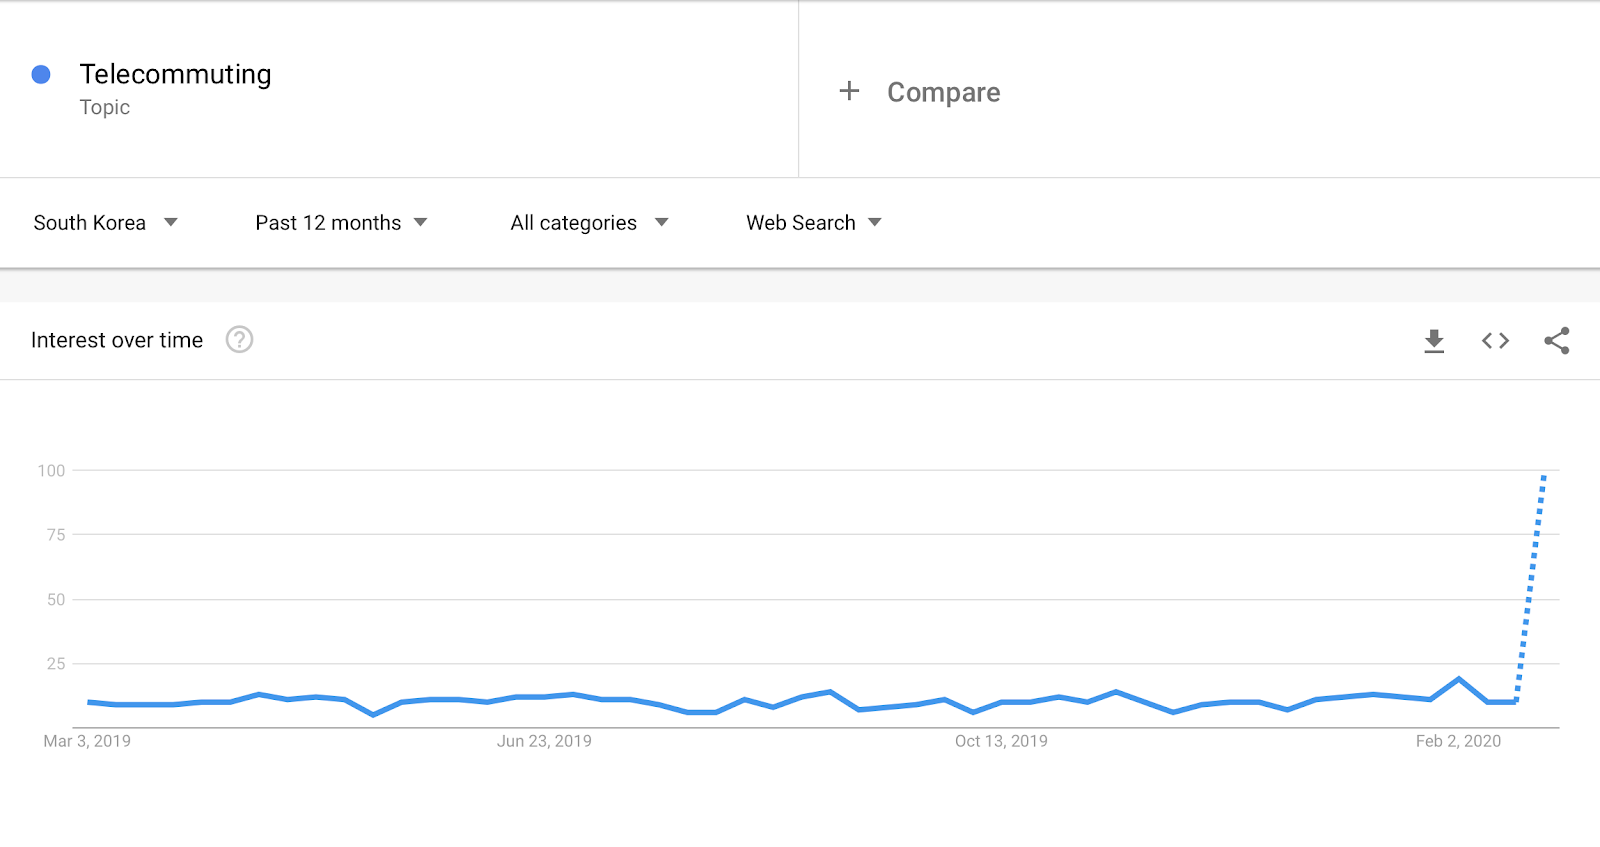 Telecommuting Interest over time